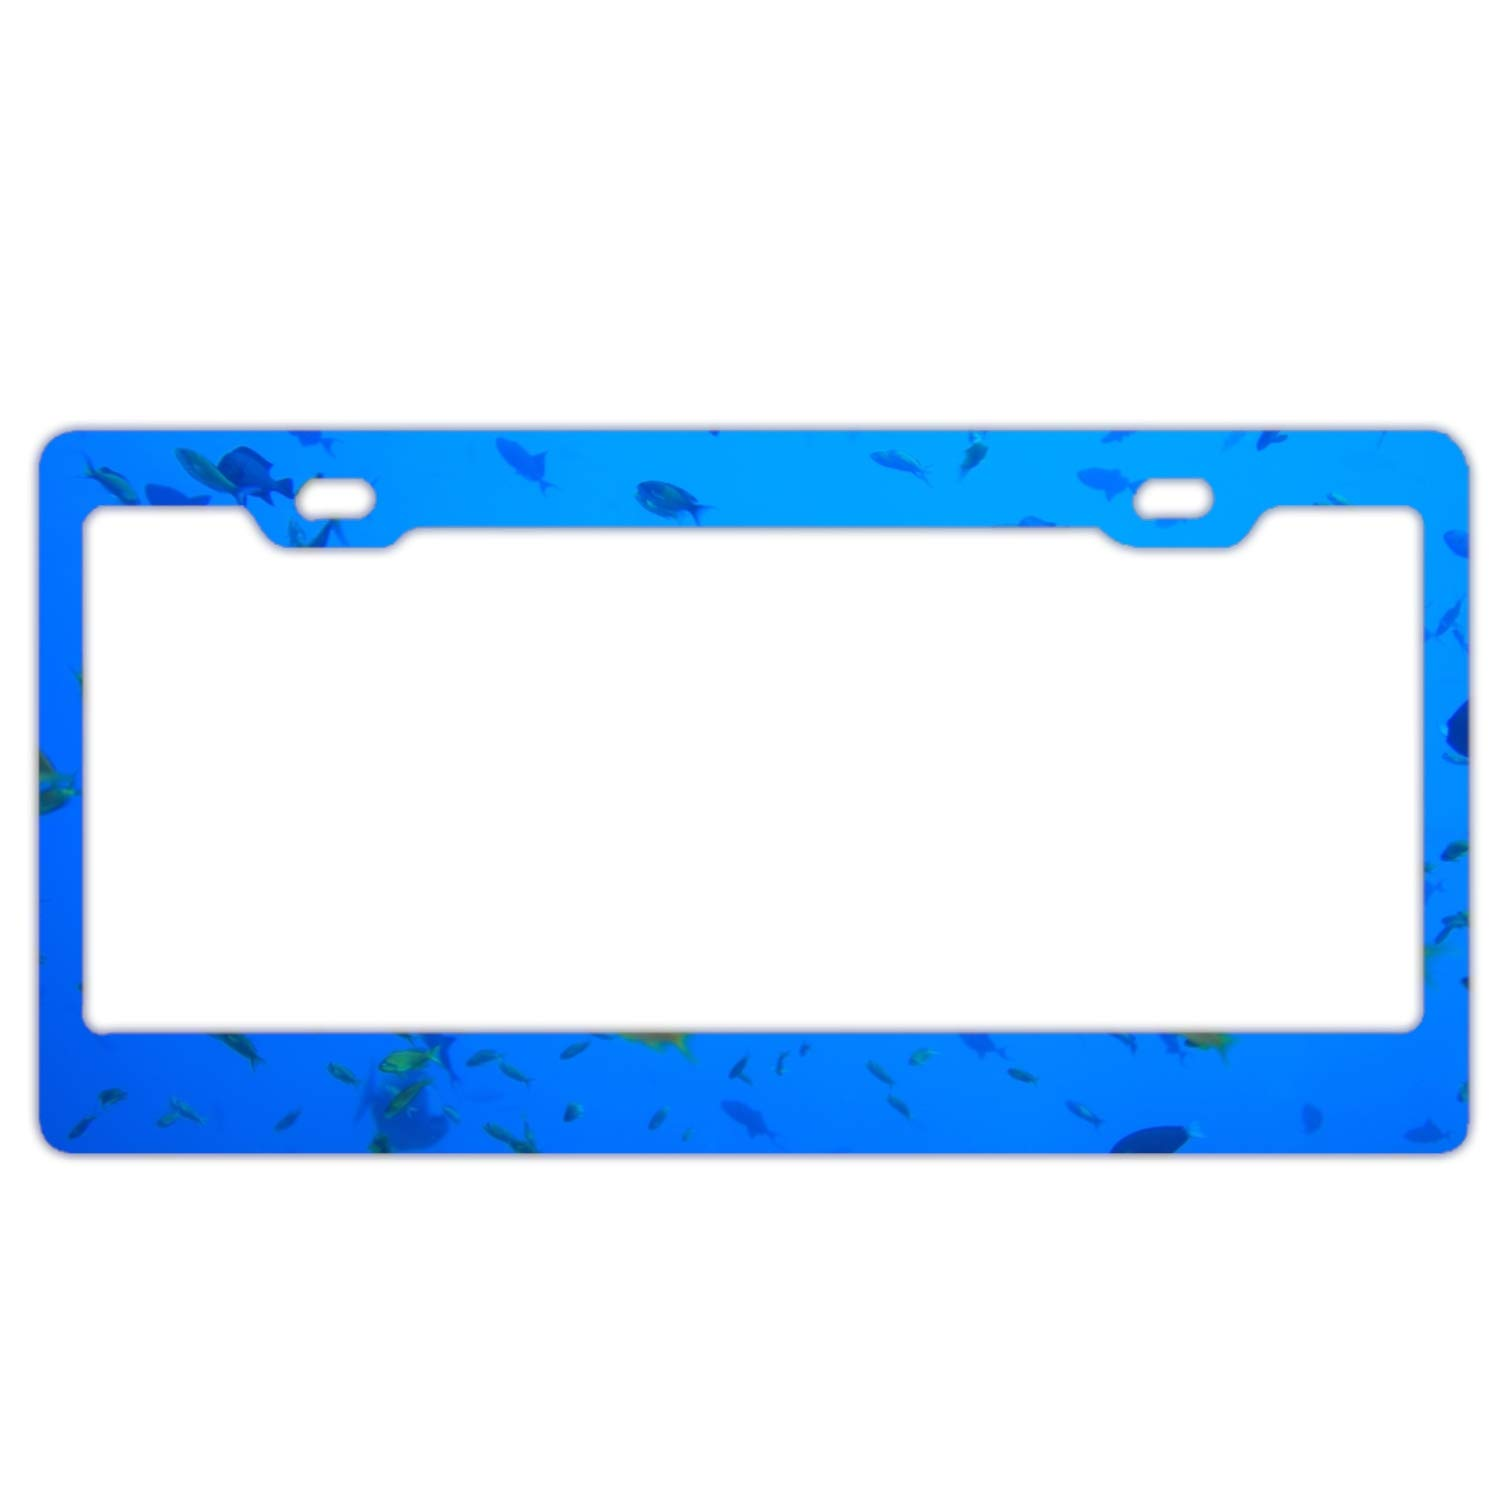 Imtailang License Plate Novelty Auto Car Tag Vanity Gift Boat Cloudy Flag